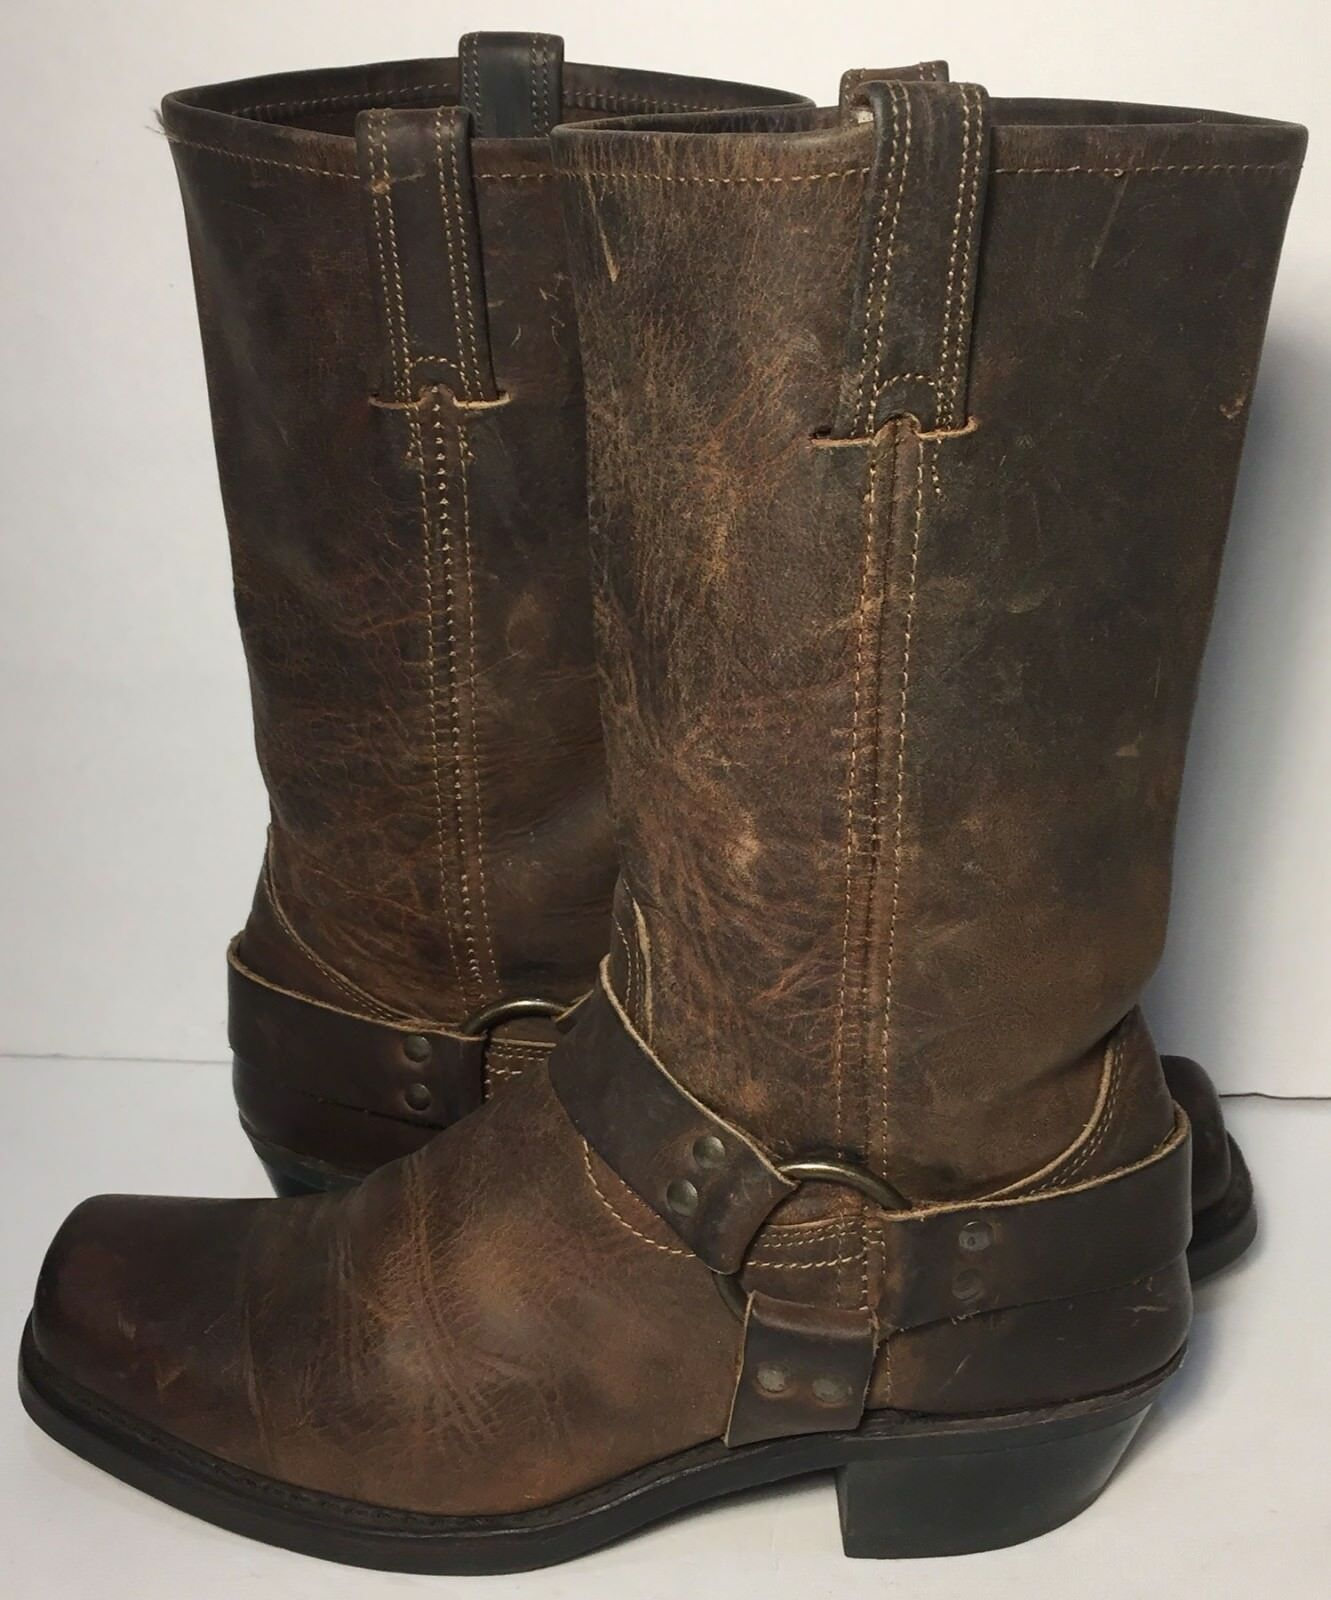 FRYE 77300 Brown Leather Harness Size Motorcycle Biking Riding Boot 12r Women Size Harness 10 d537bc